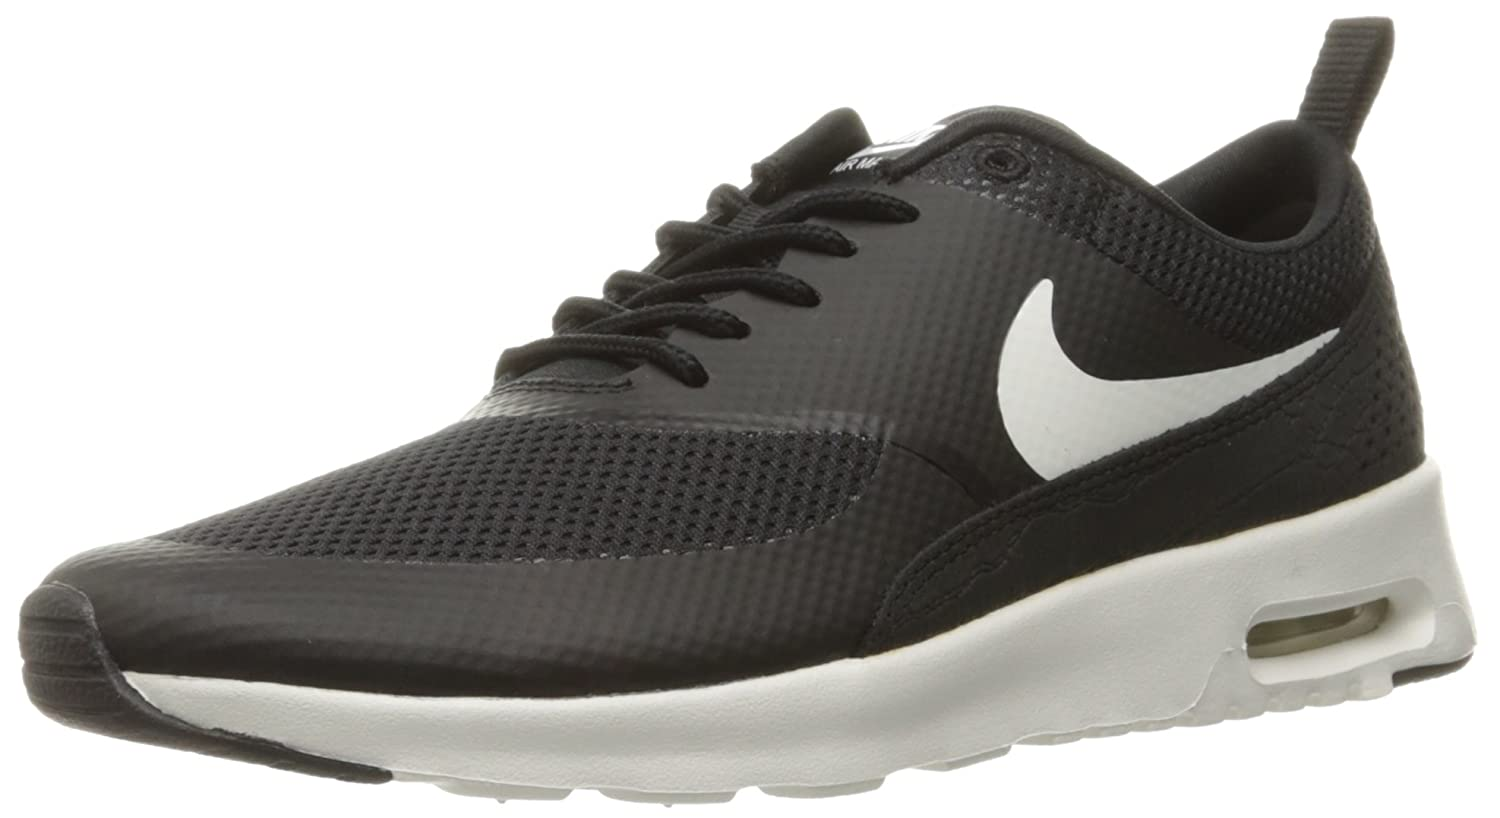 Nike WMNS Air Max Thea 599409-020 Women's Shoes